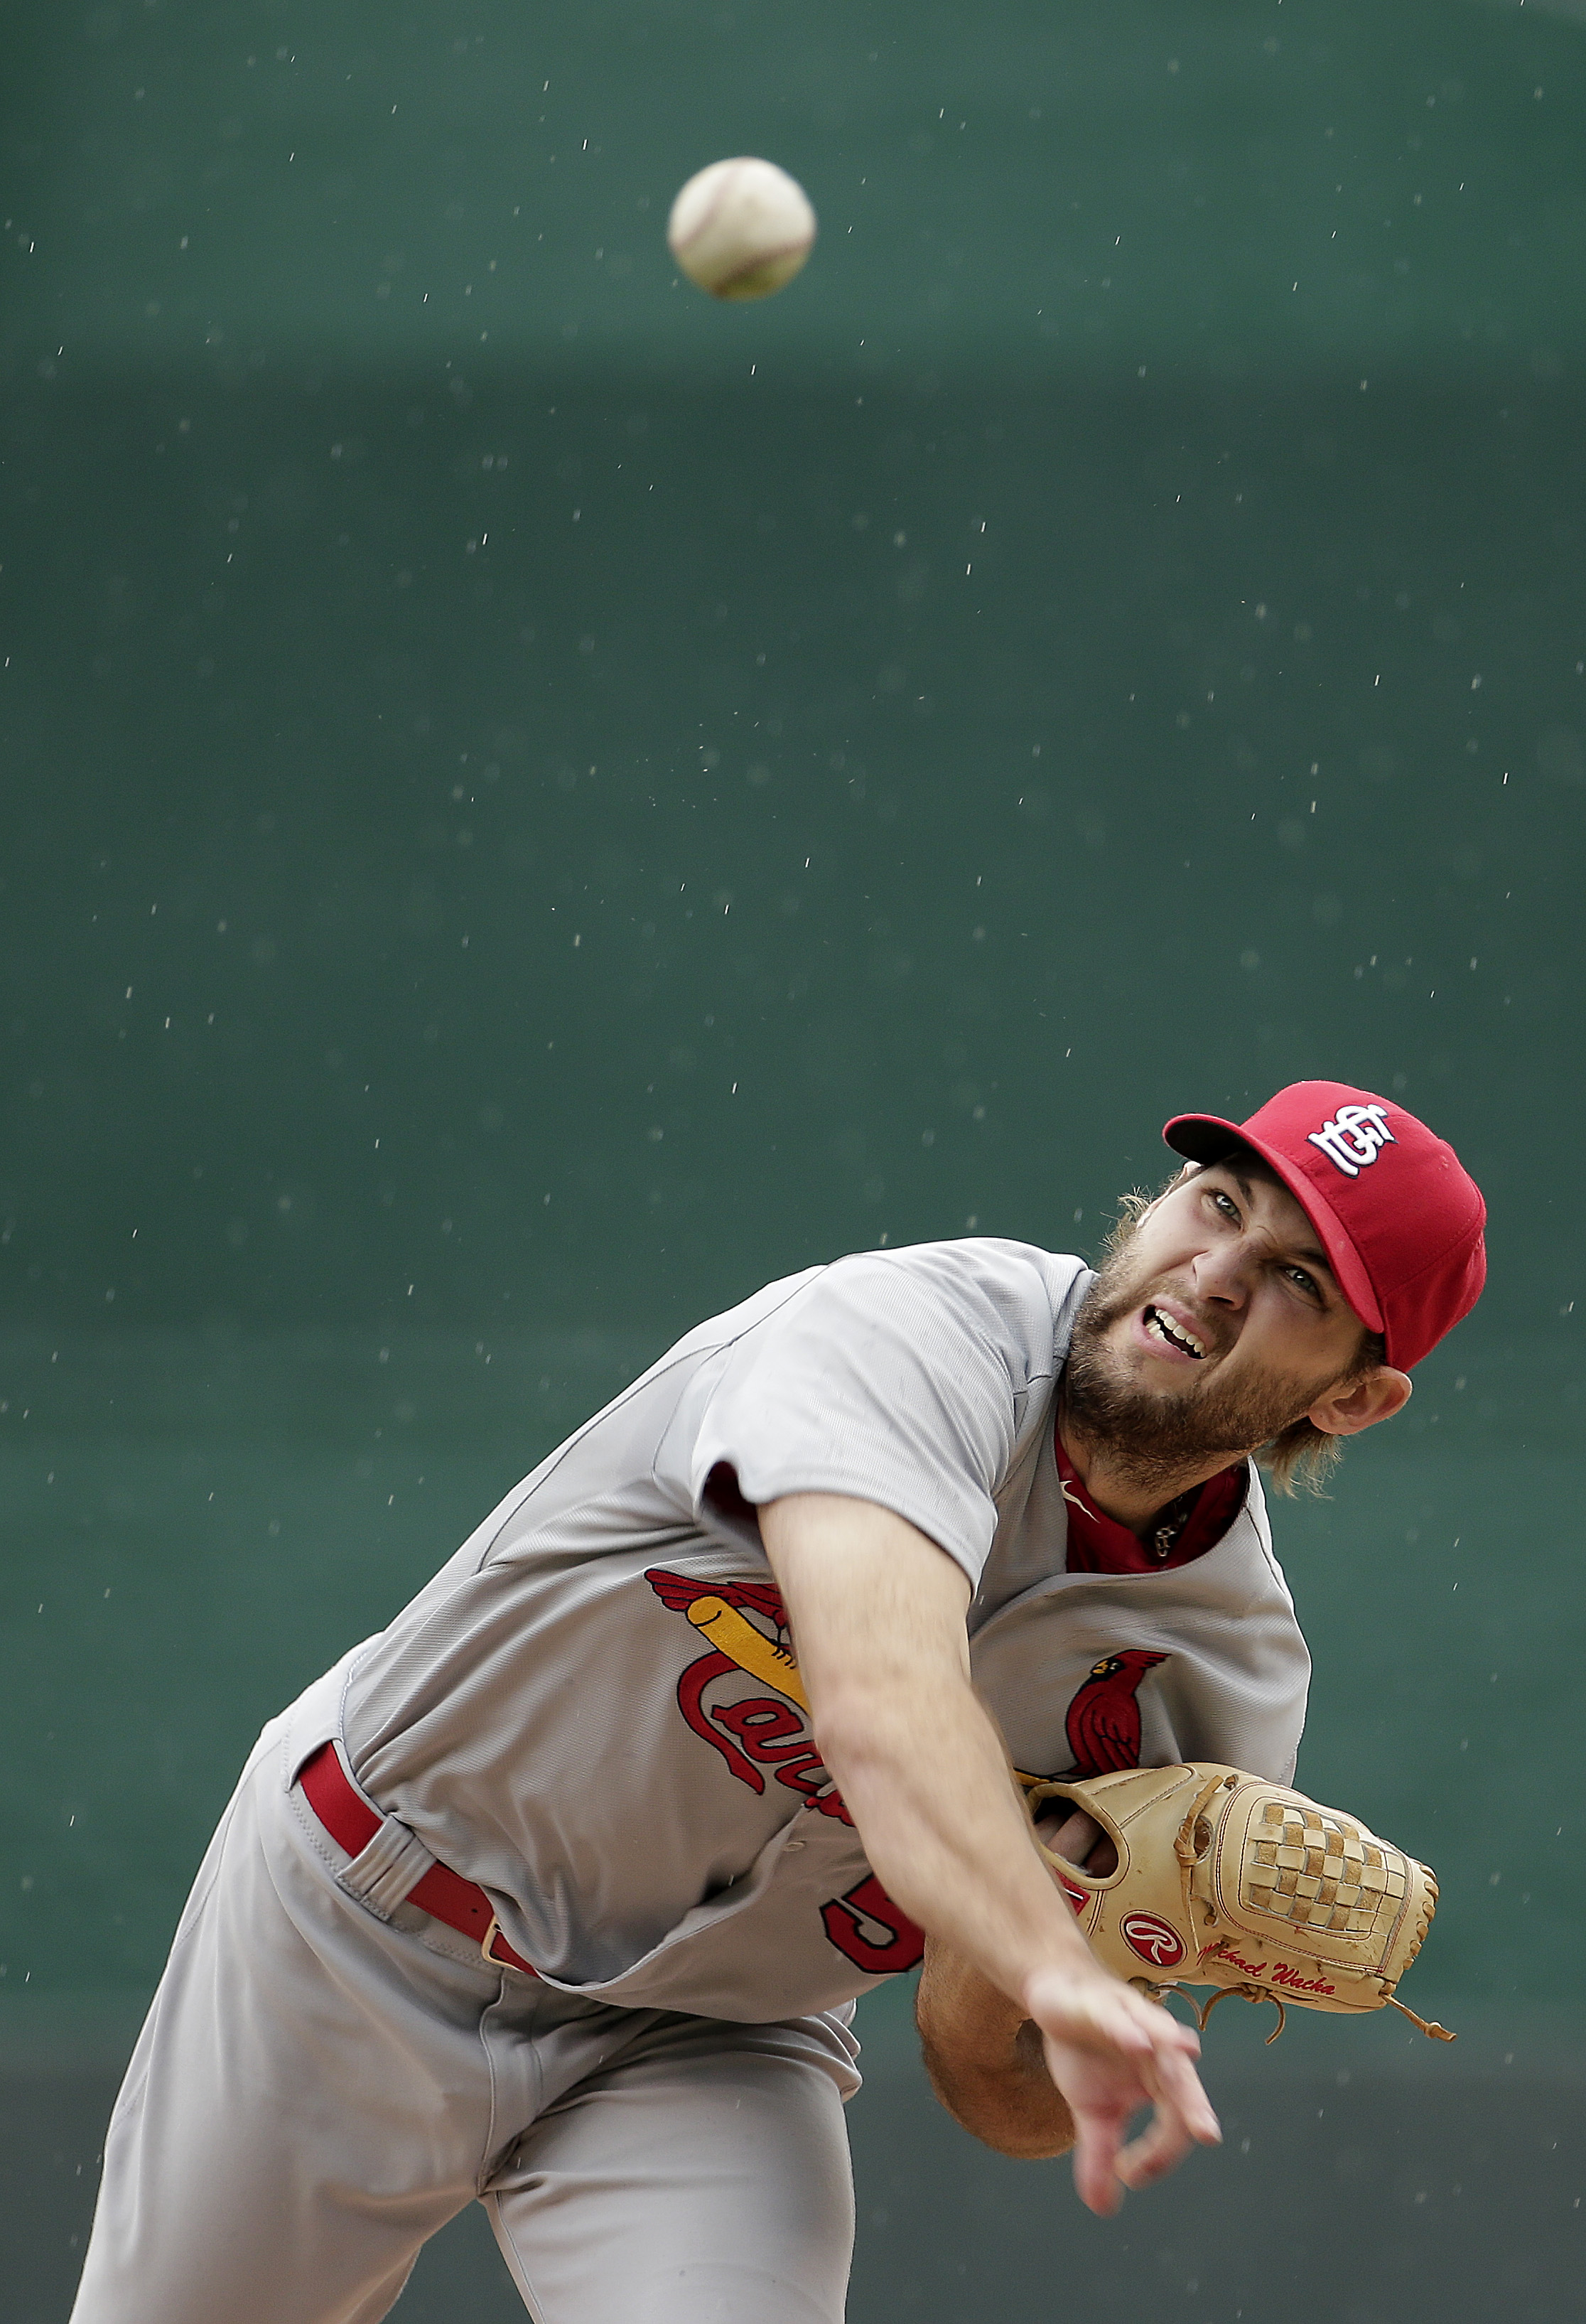 St. Louis Cardinals starting pitcher Michael Wacha throws during the first inning of a baseball game against the Kansas City Royals, Sunday, May 24, 2015, in Kansas City, Mo. (AP Photo/Charlie Riedel)